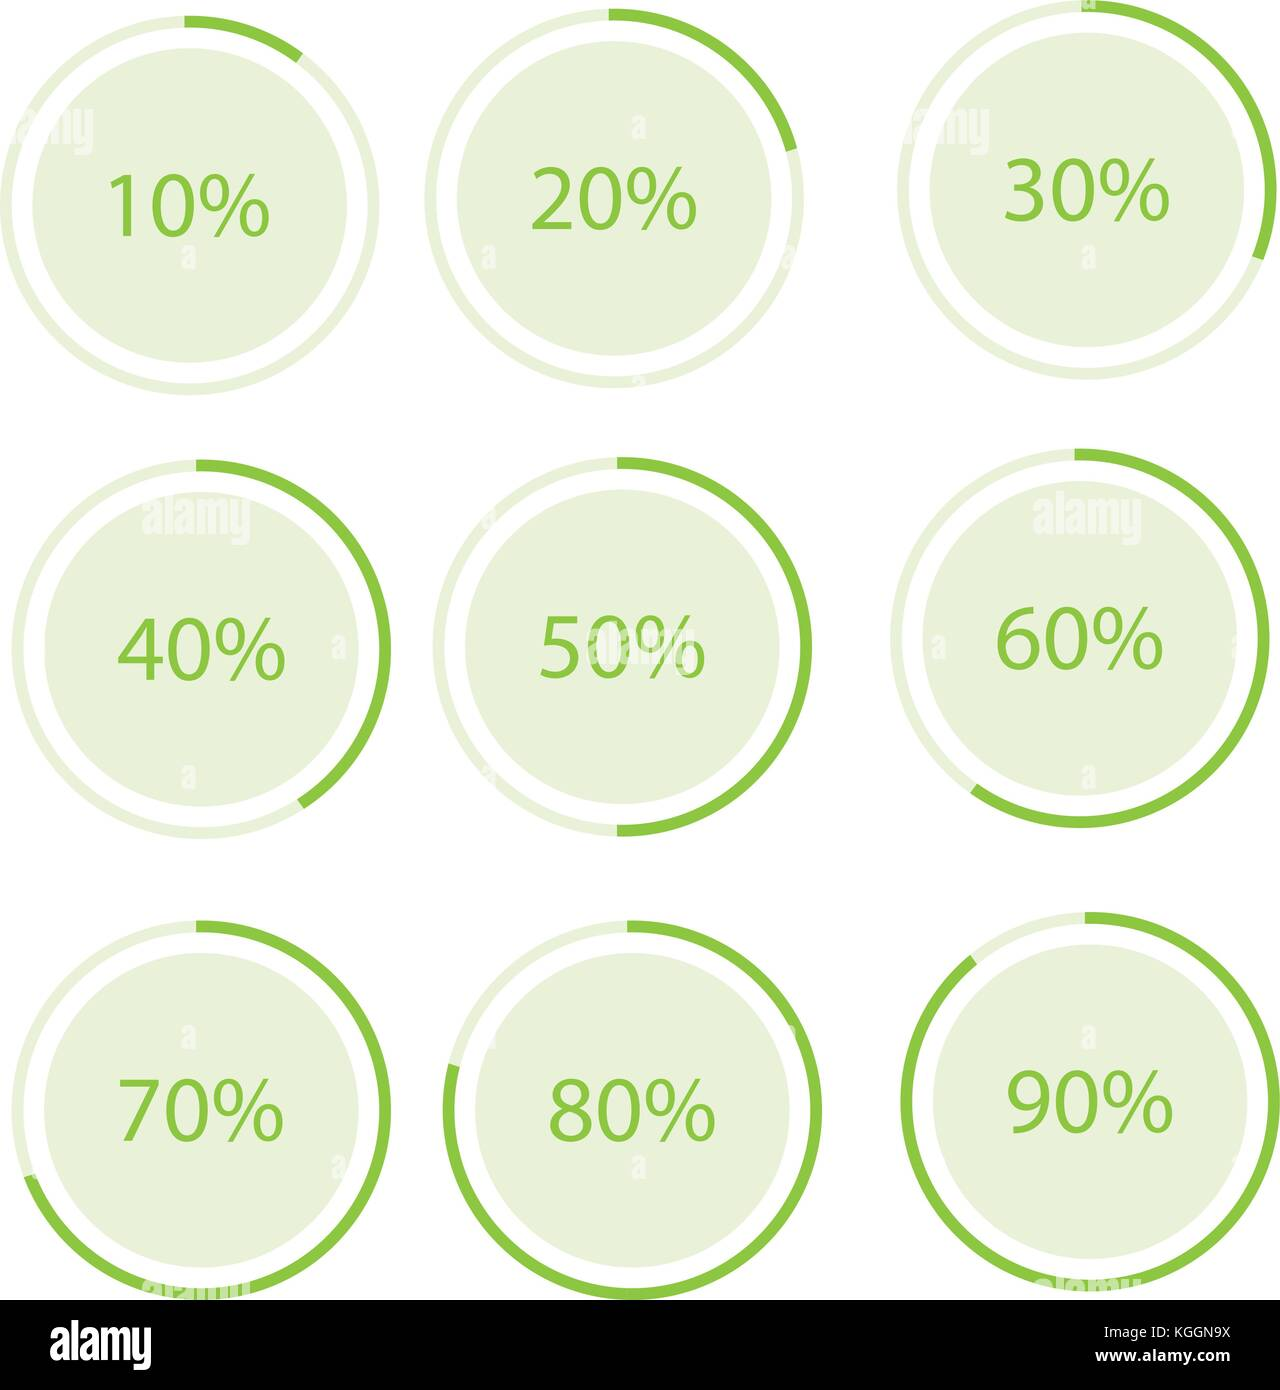 Vector Illustration Green Round Circle Pie Graph Chart